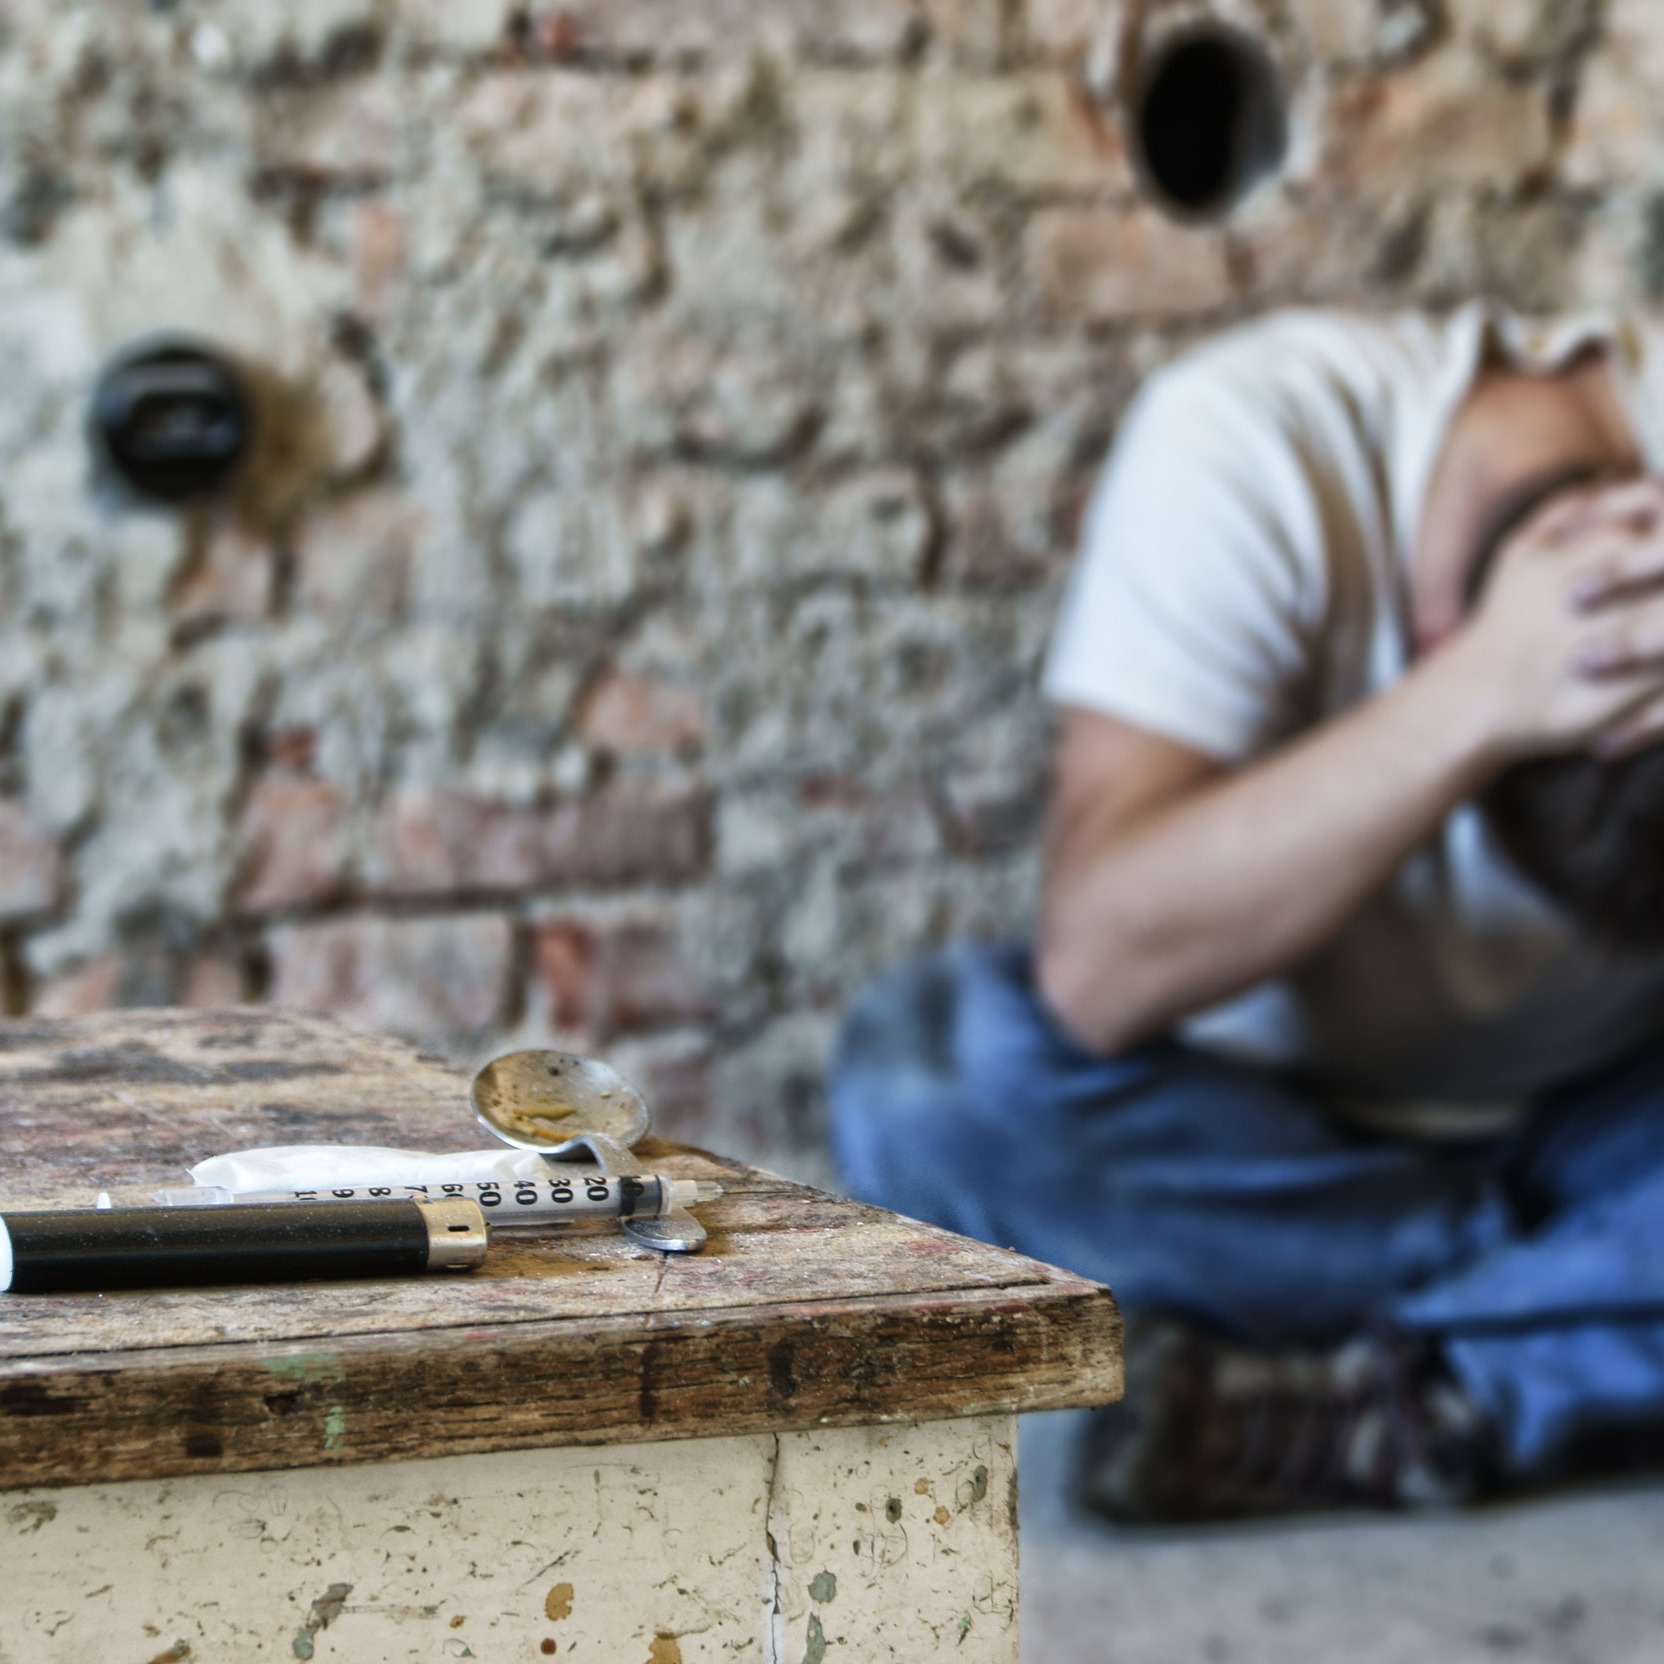 SPOTLIGHT: SUBSTANCE ABUSE AND ADDICTION -